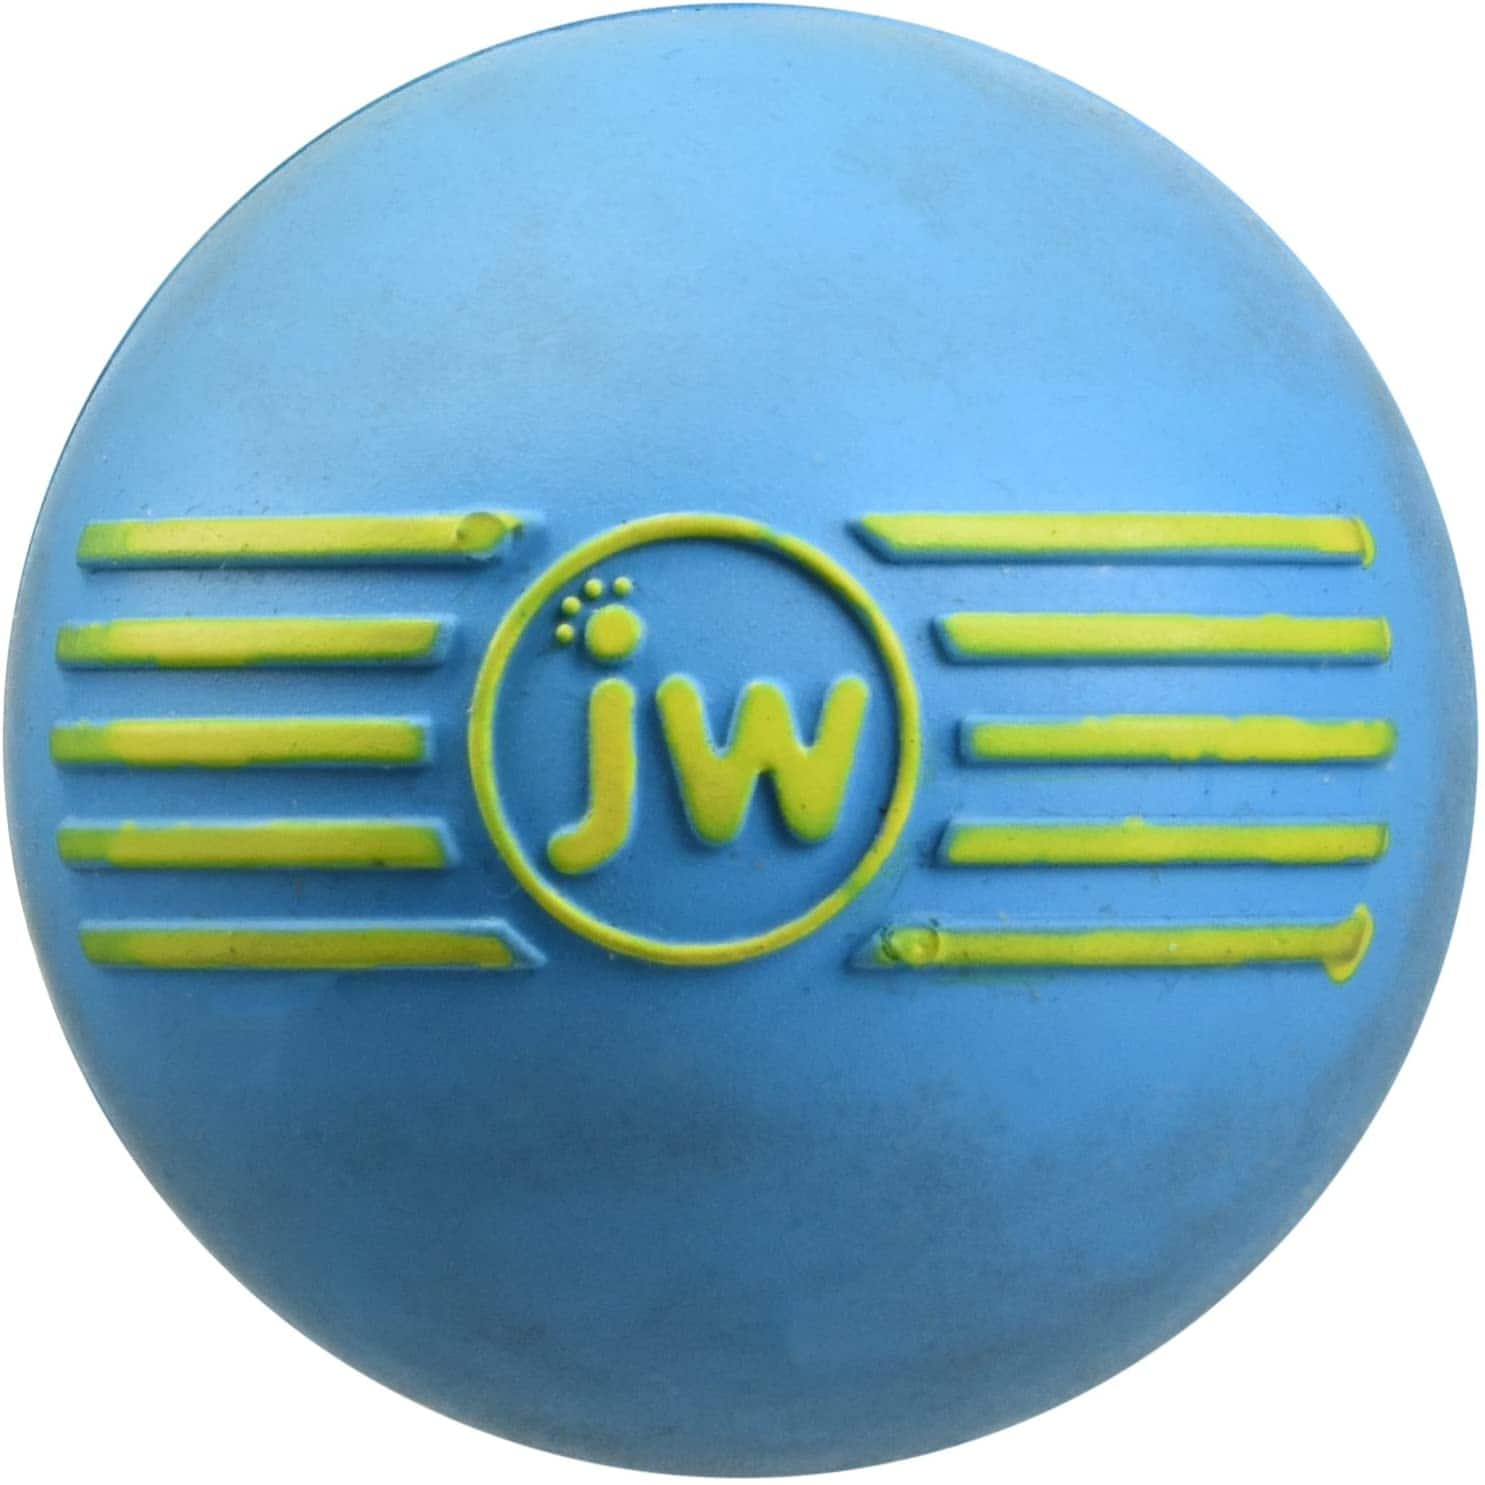 JW Pet Company iSqueak Ball Rubber Dog Toy, Colors Vary $2.67